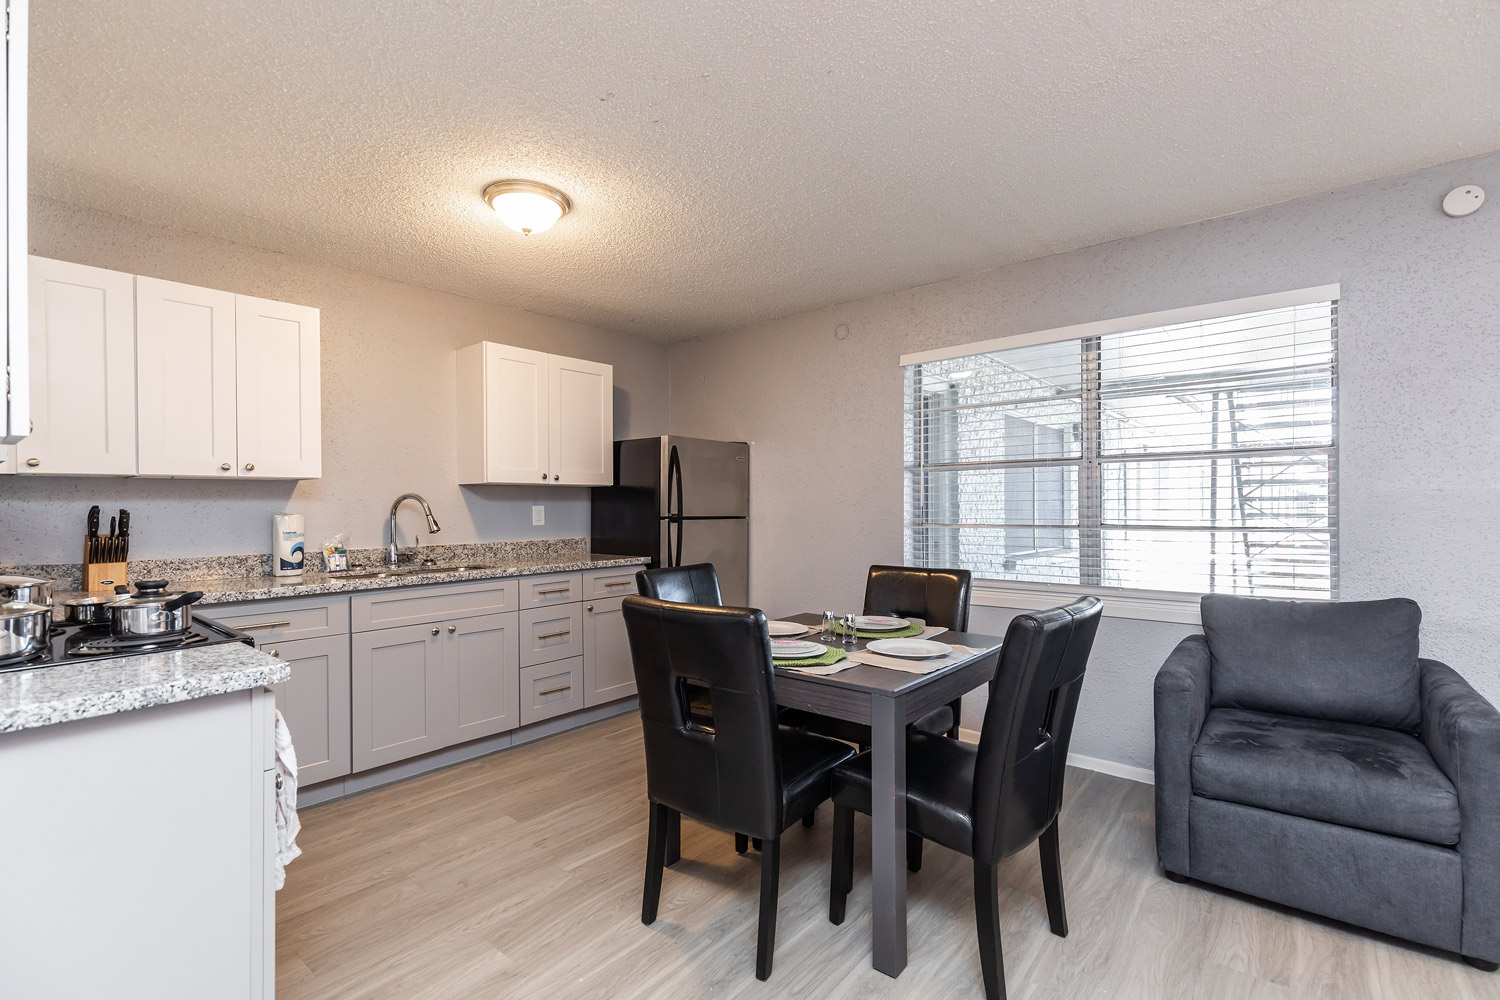 Spacious Floor Plans at The Five Points at Texas Apartments in Texas City, Texas